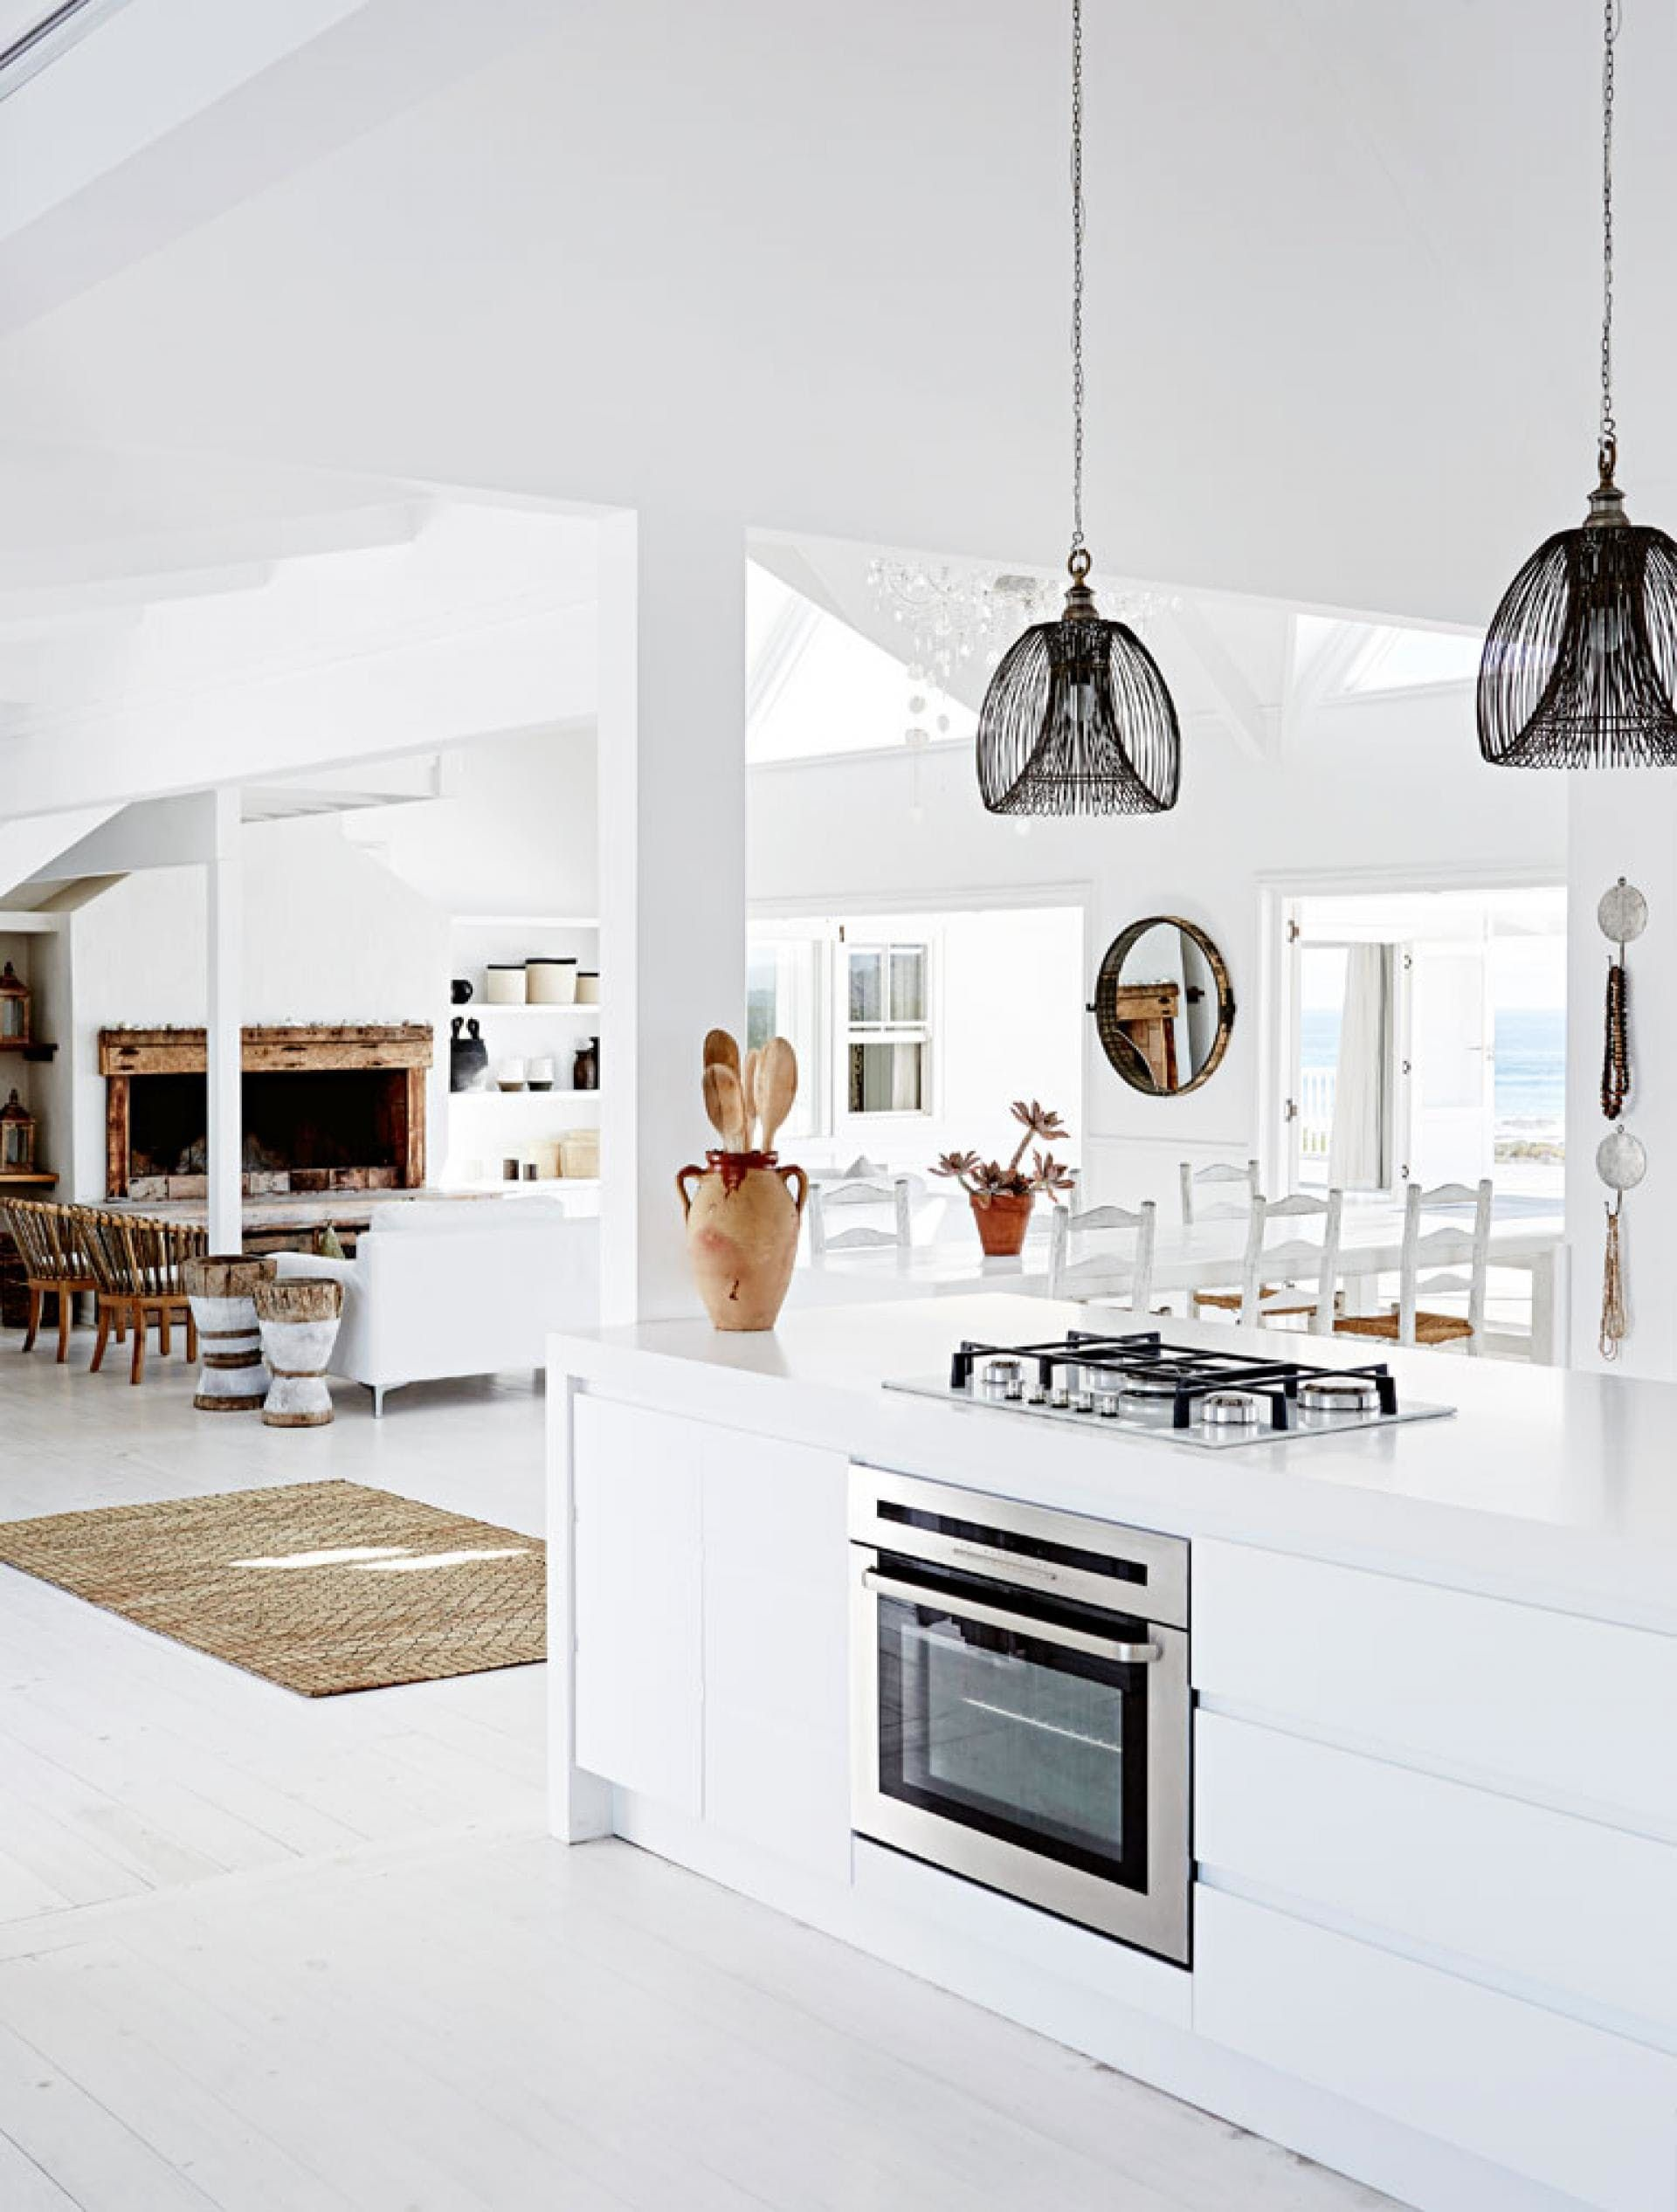 13 Gorgeous Kitchens from All Around the World   Kitchens, House and ...